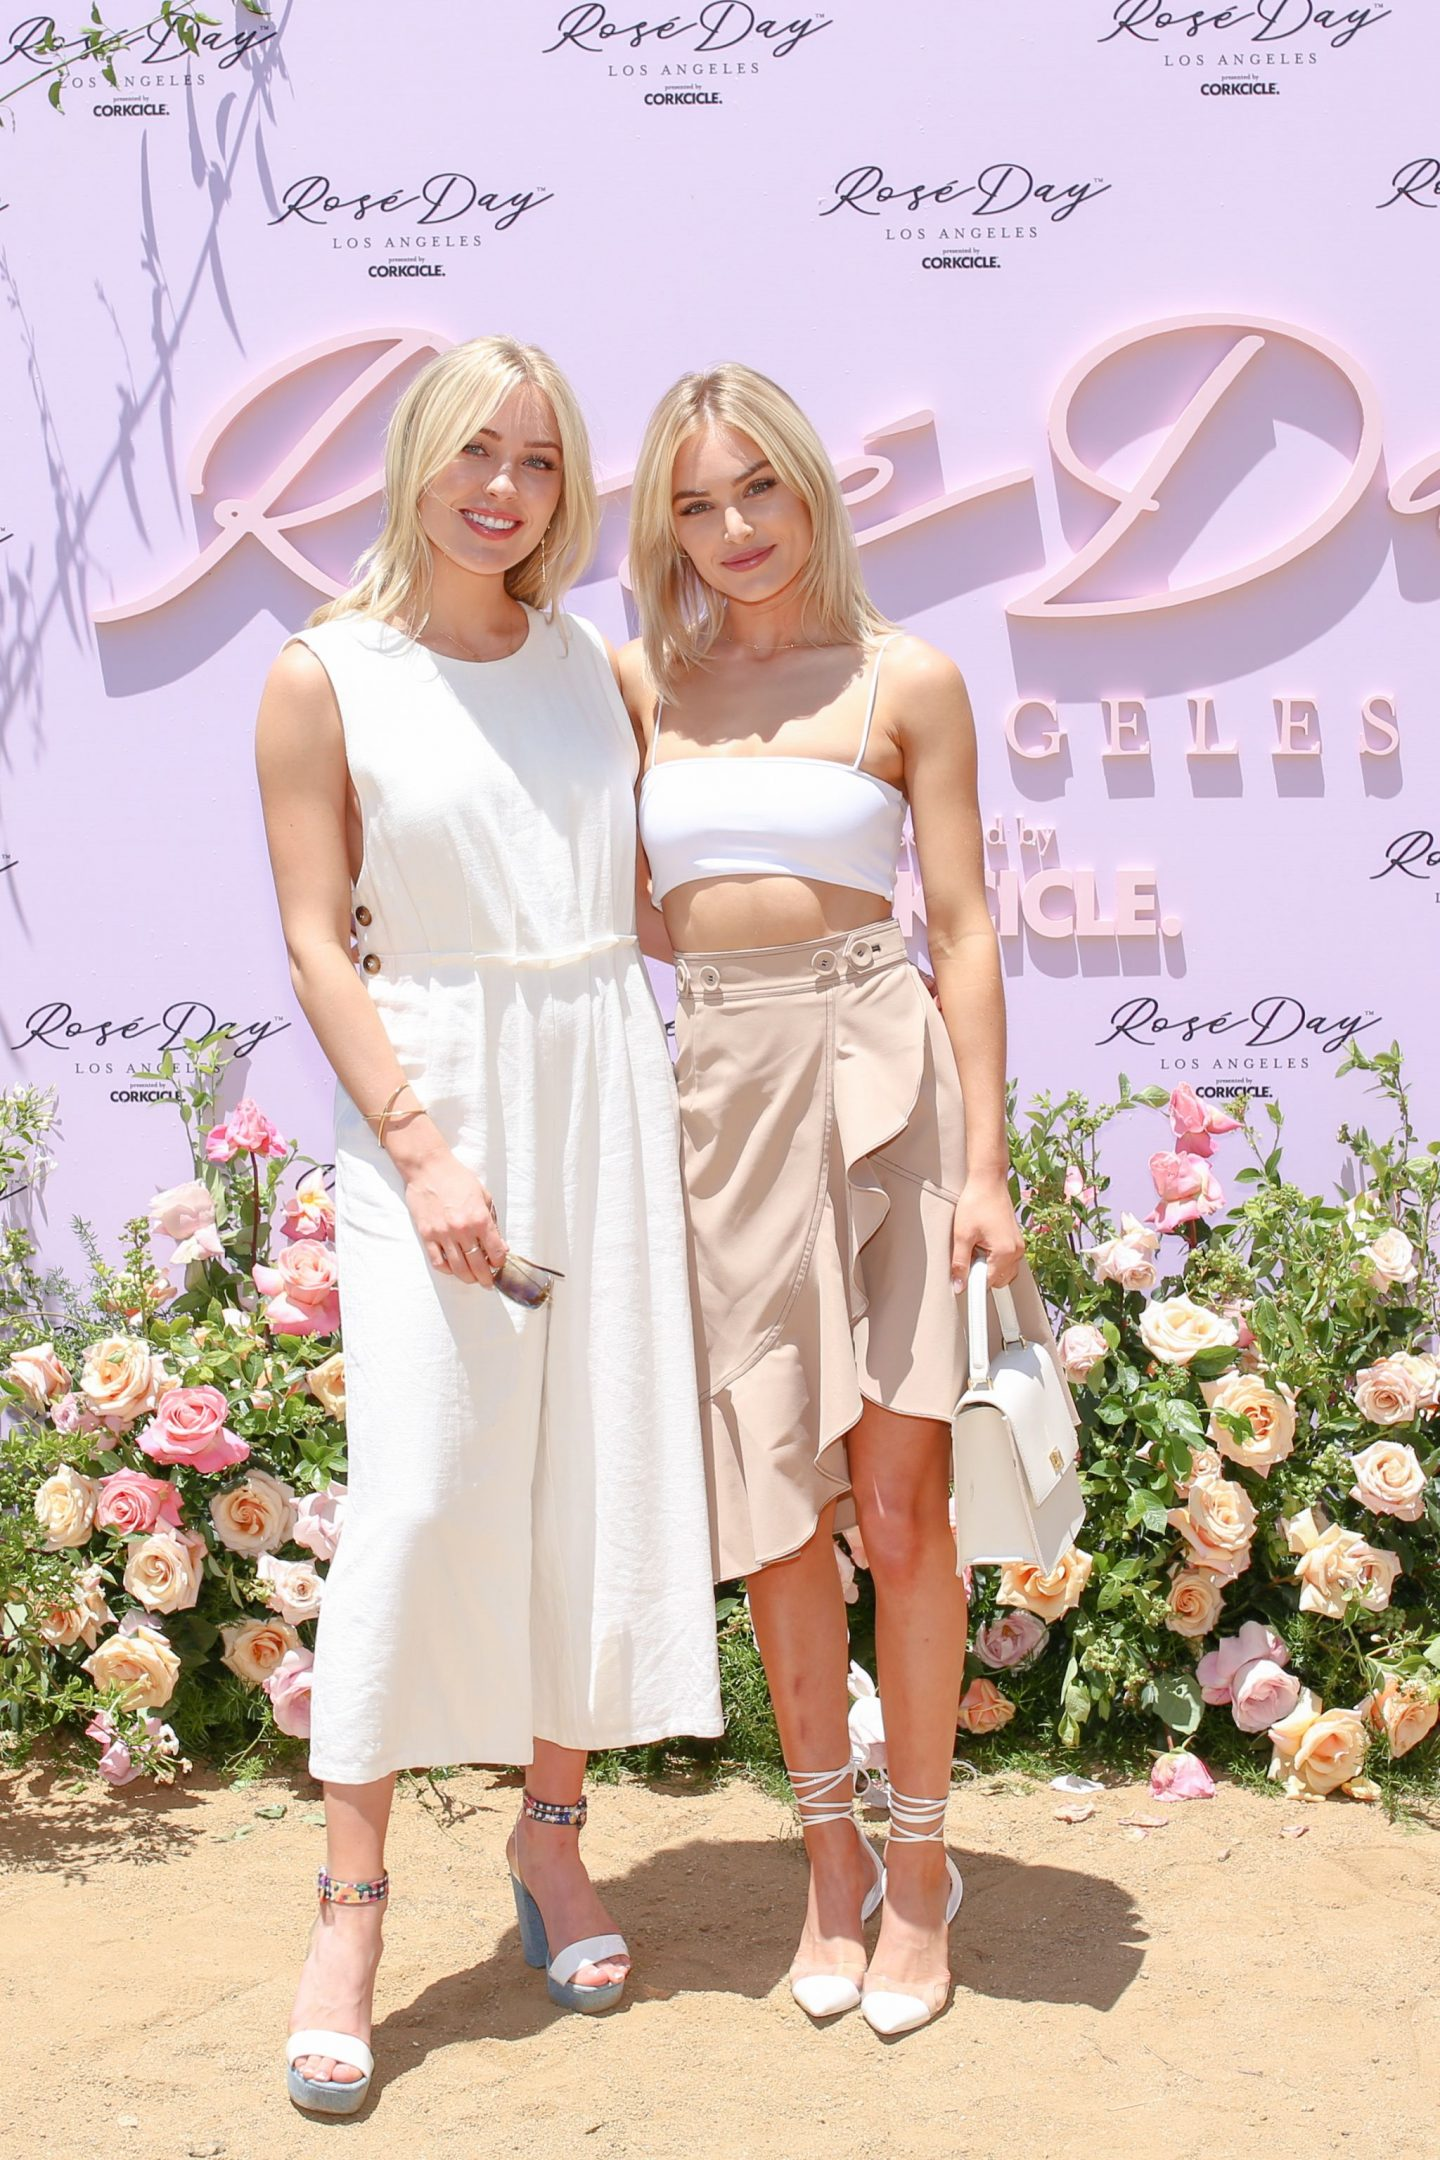 """The Stars Come Out To Celebrate """"Rosé Day L.A. presented by Corkcicle"""" At Exclusive Malibu Event"""